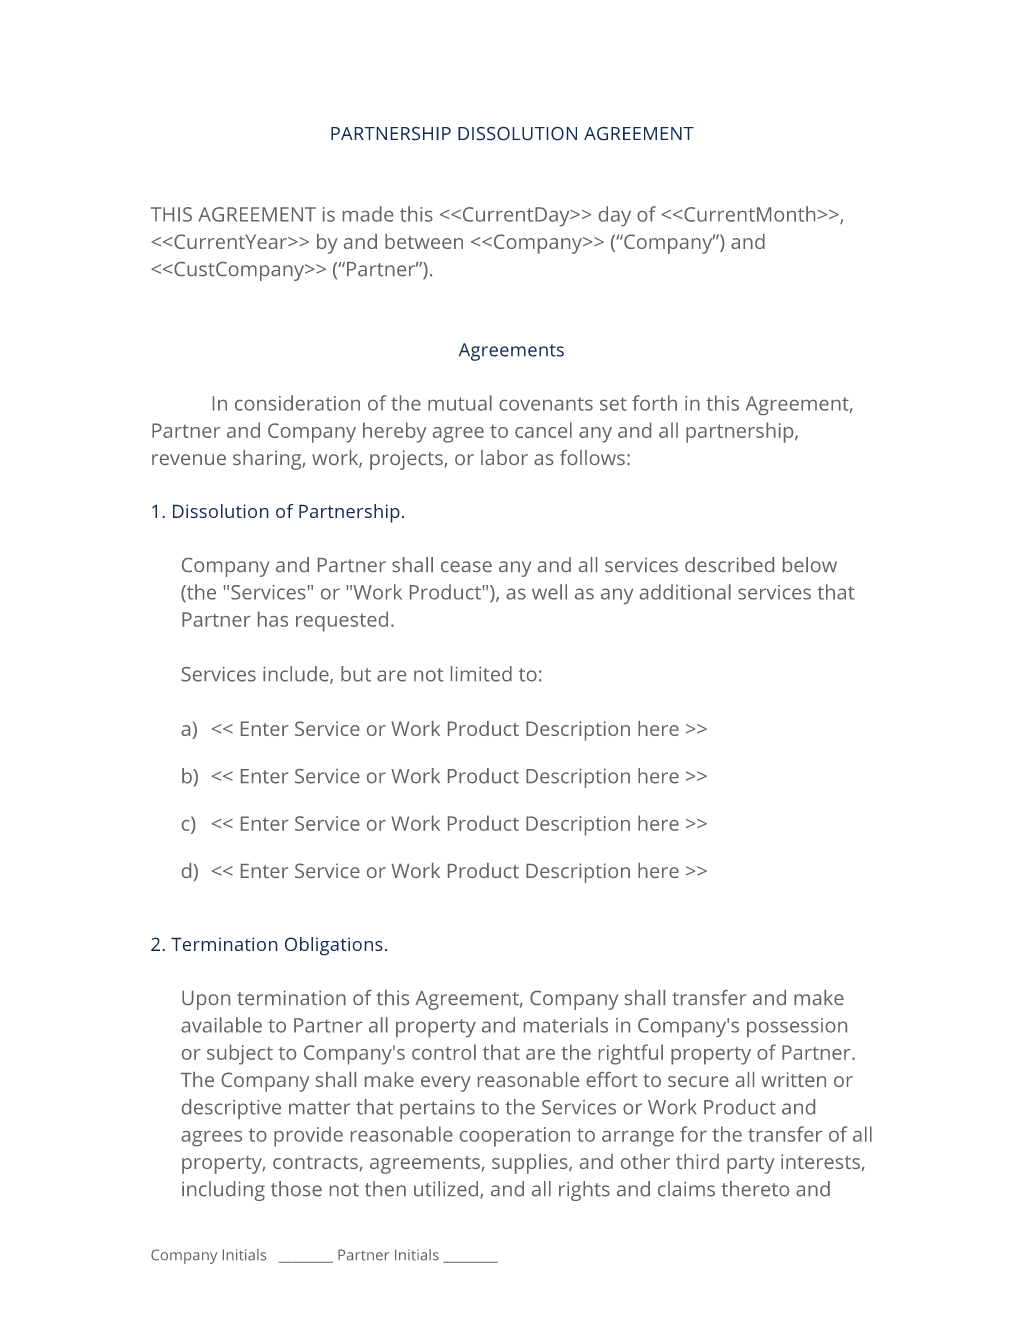 Partnership Dissolution Agreement  Use The Partnership